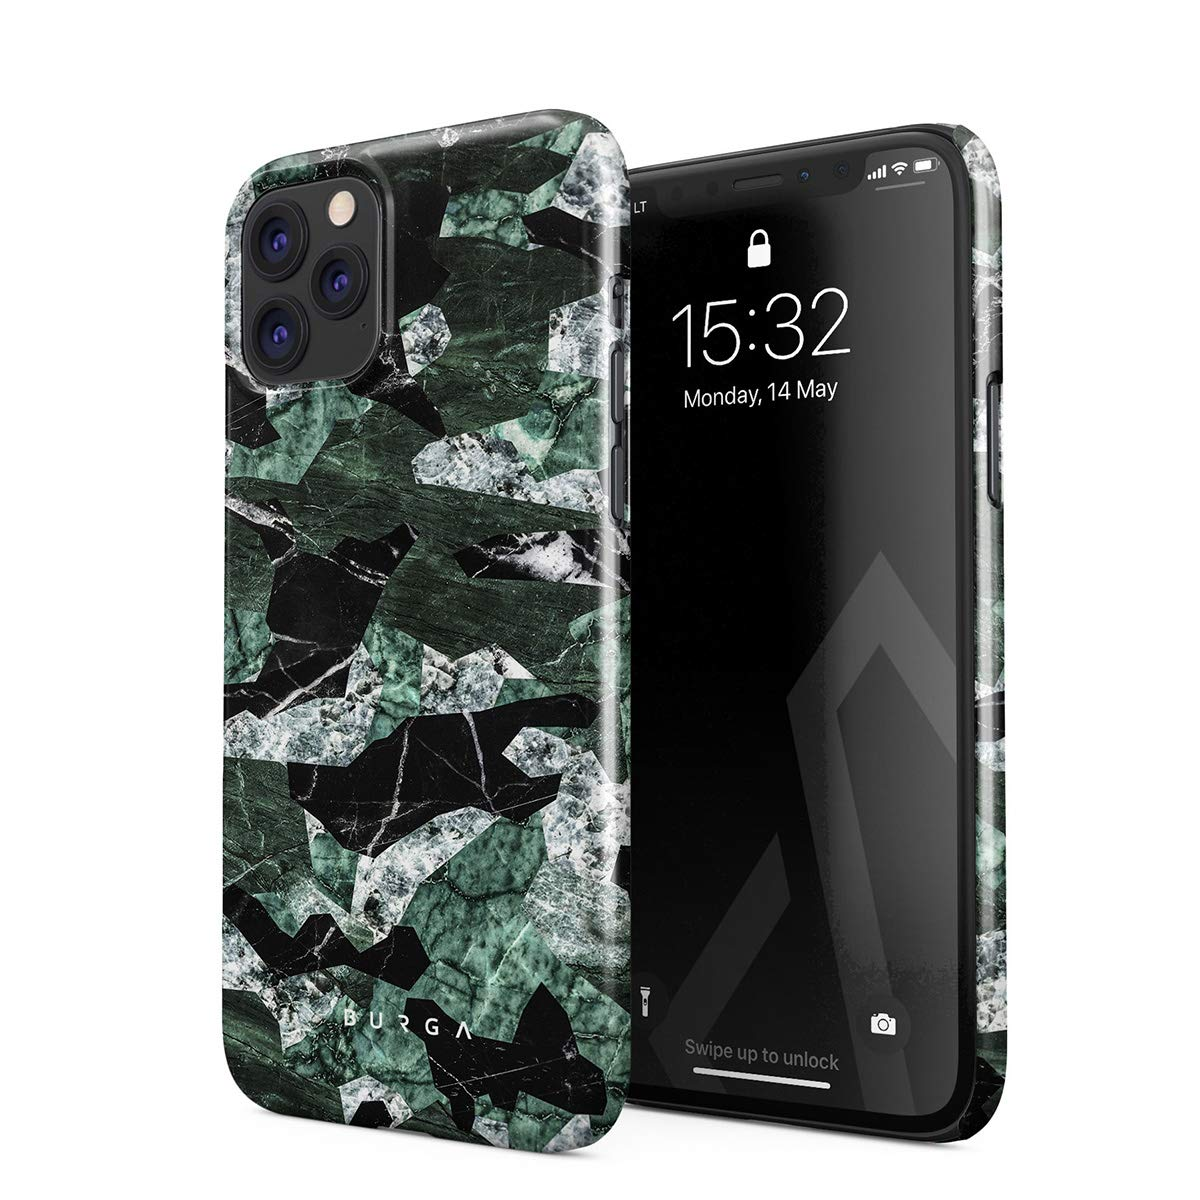 BURGA Phone Case Compatible with iPhone 11 PRO MAX - Jade Green Military Forest Marble Camo Camouflage Cute Case for Women Thin Design Durable Hard Plastic Protective Case